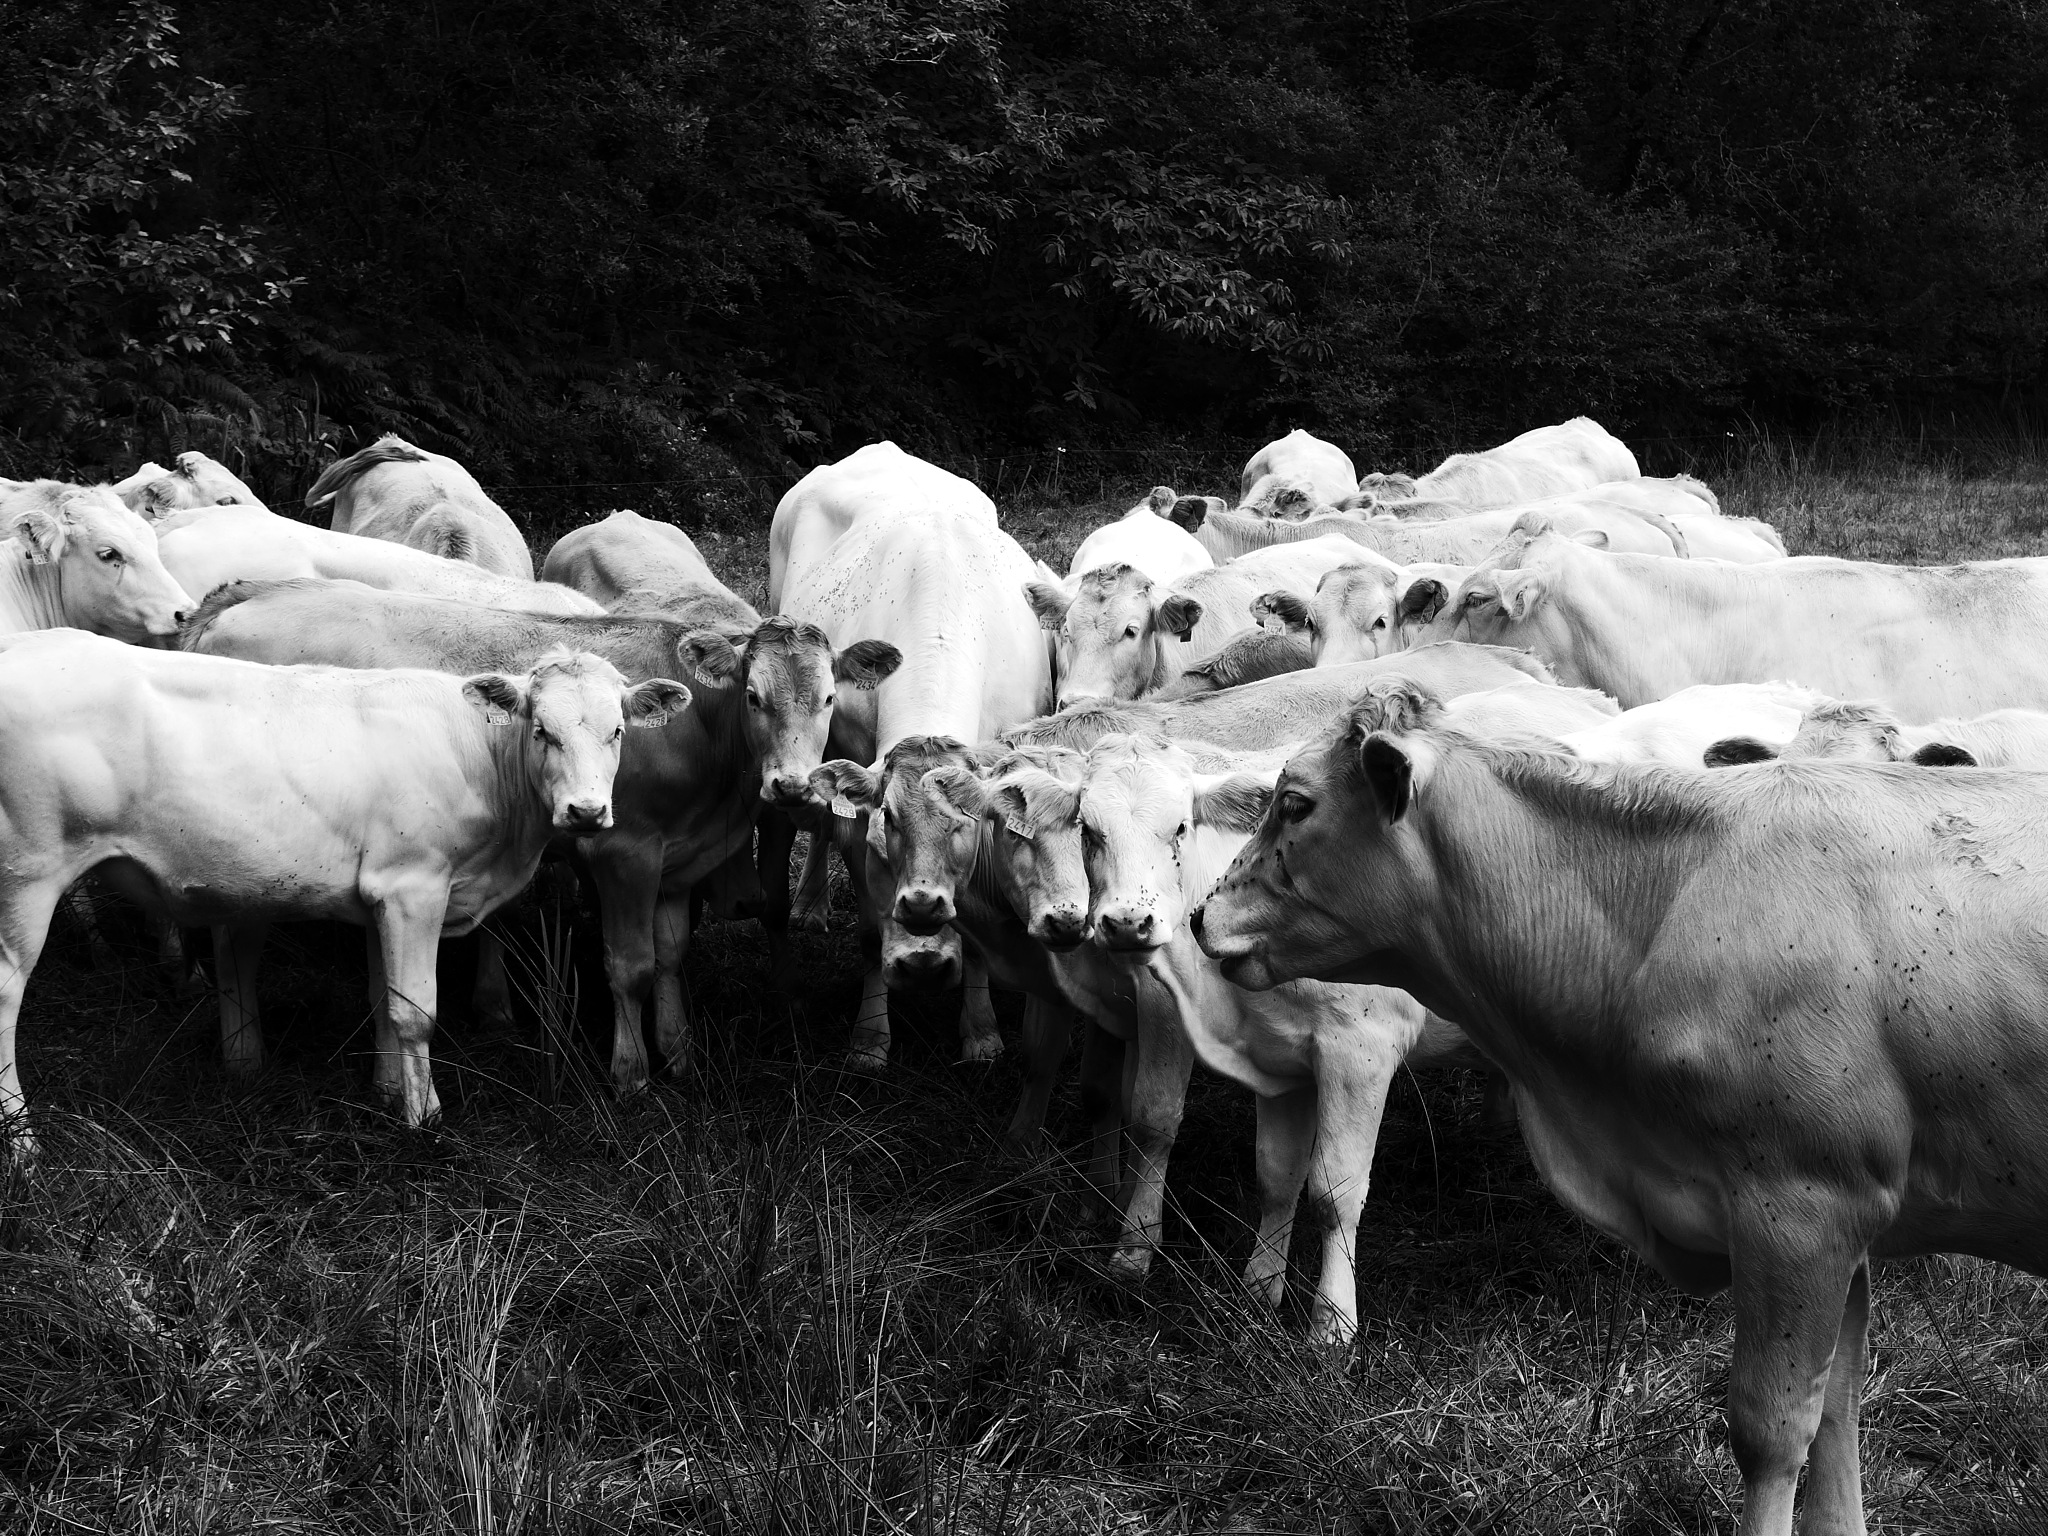 cows #1 by philray